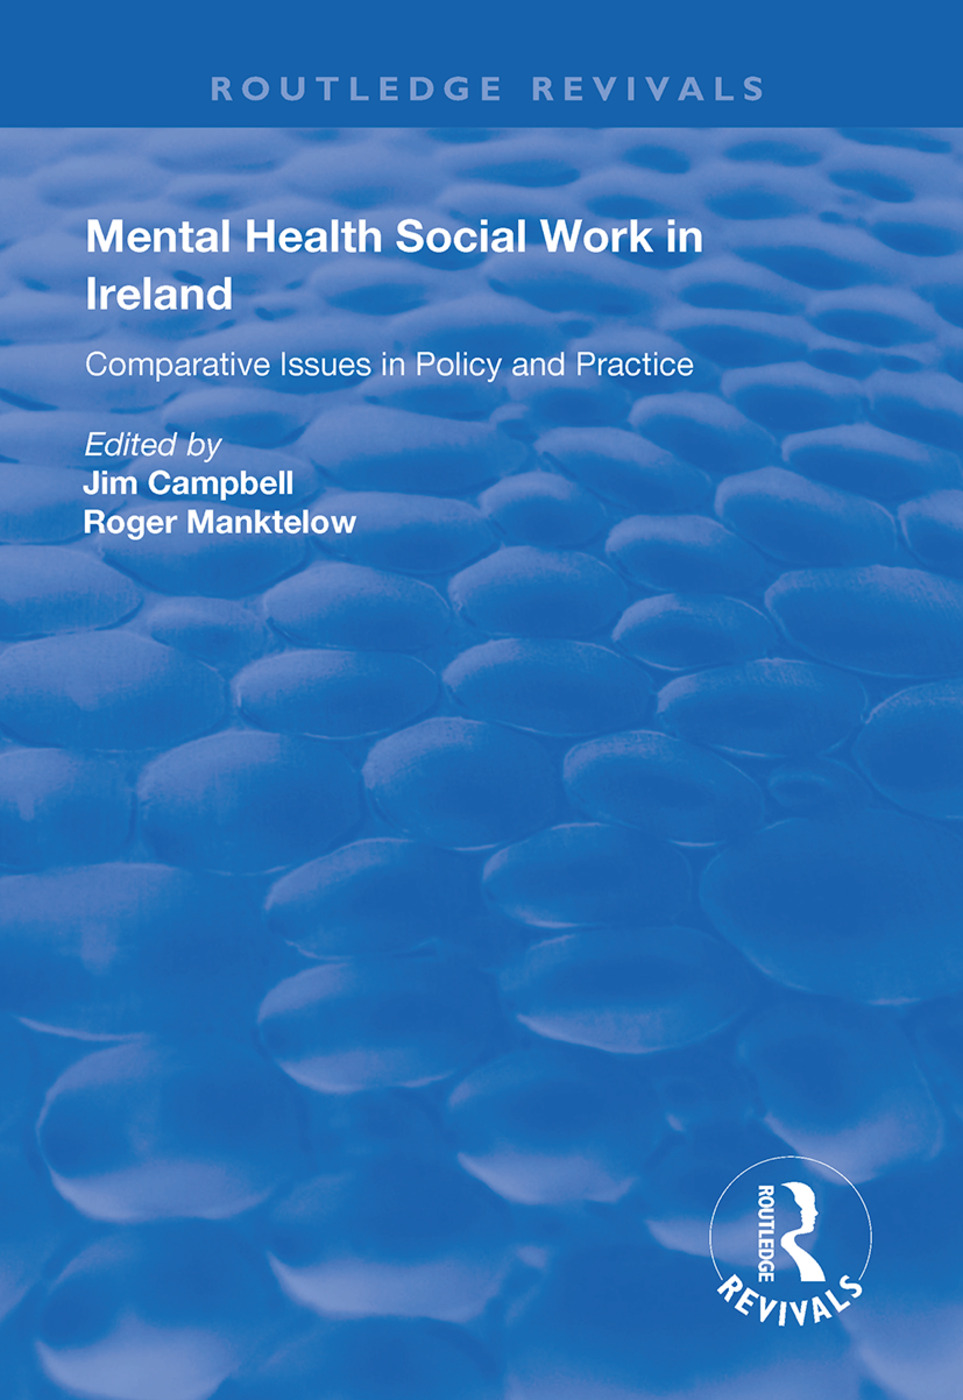 Mental health policy in Northern Ireland